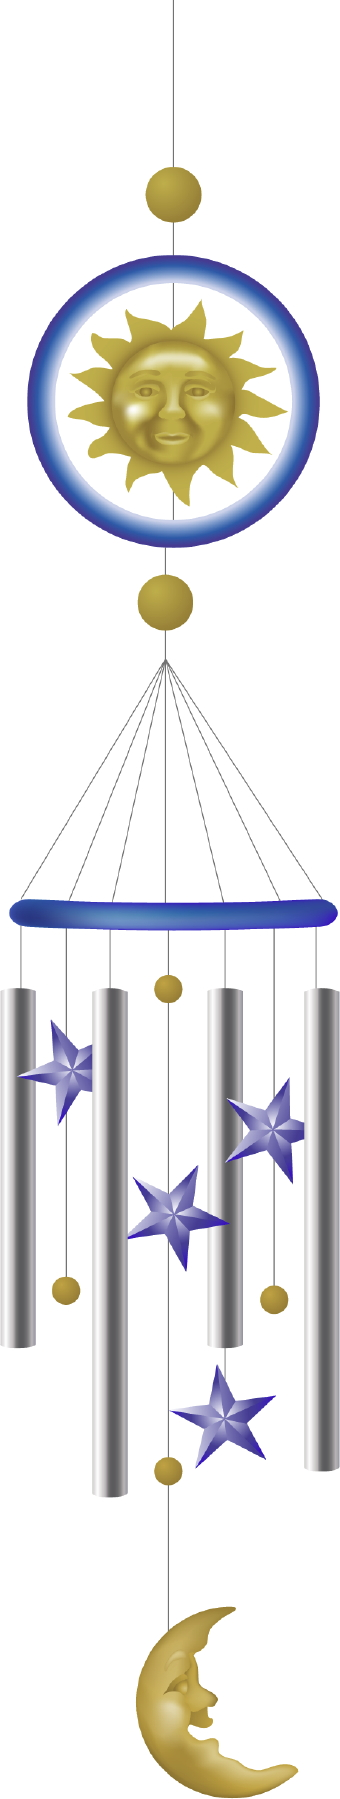 Chimes clipart wind chime Sun Sun Moon And And